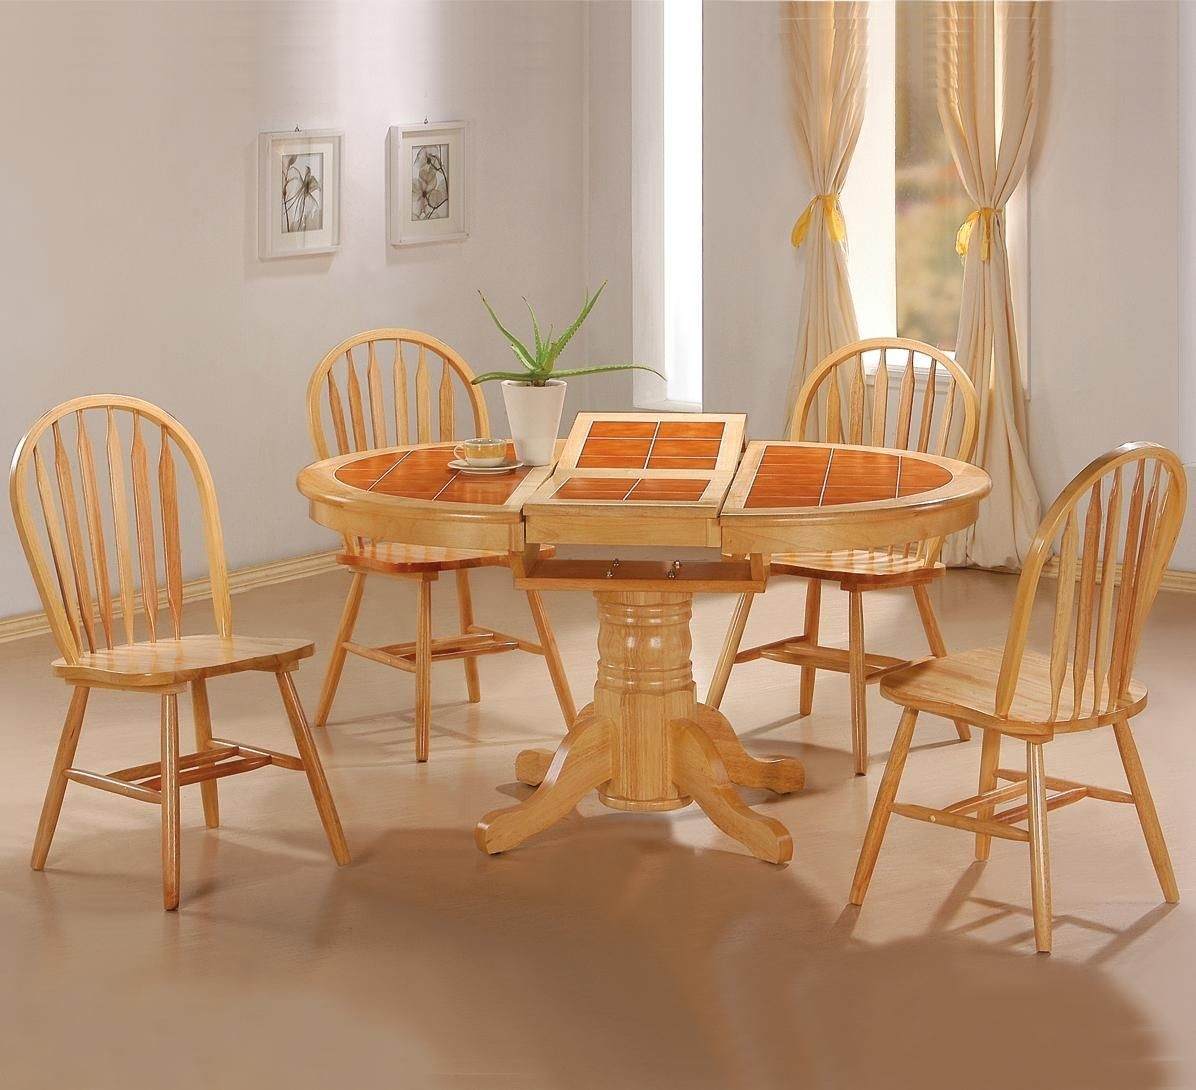 Butterfly leaf dining table set & Round Dining Table With Butterfly Leaf - Foter